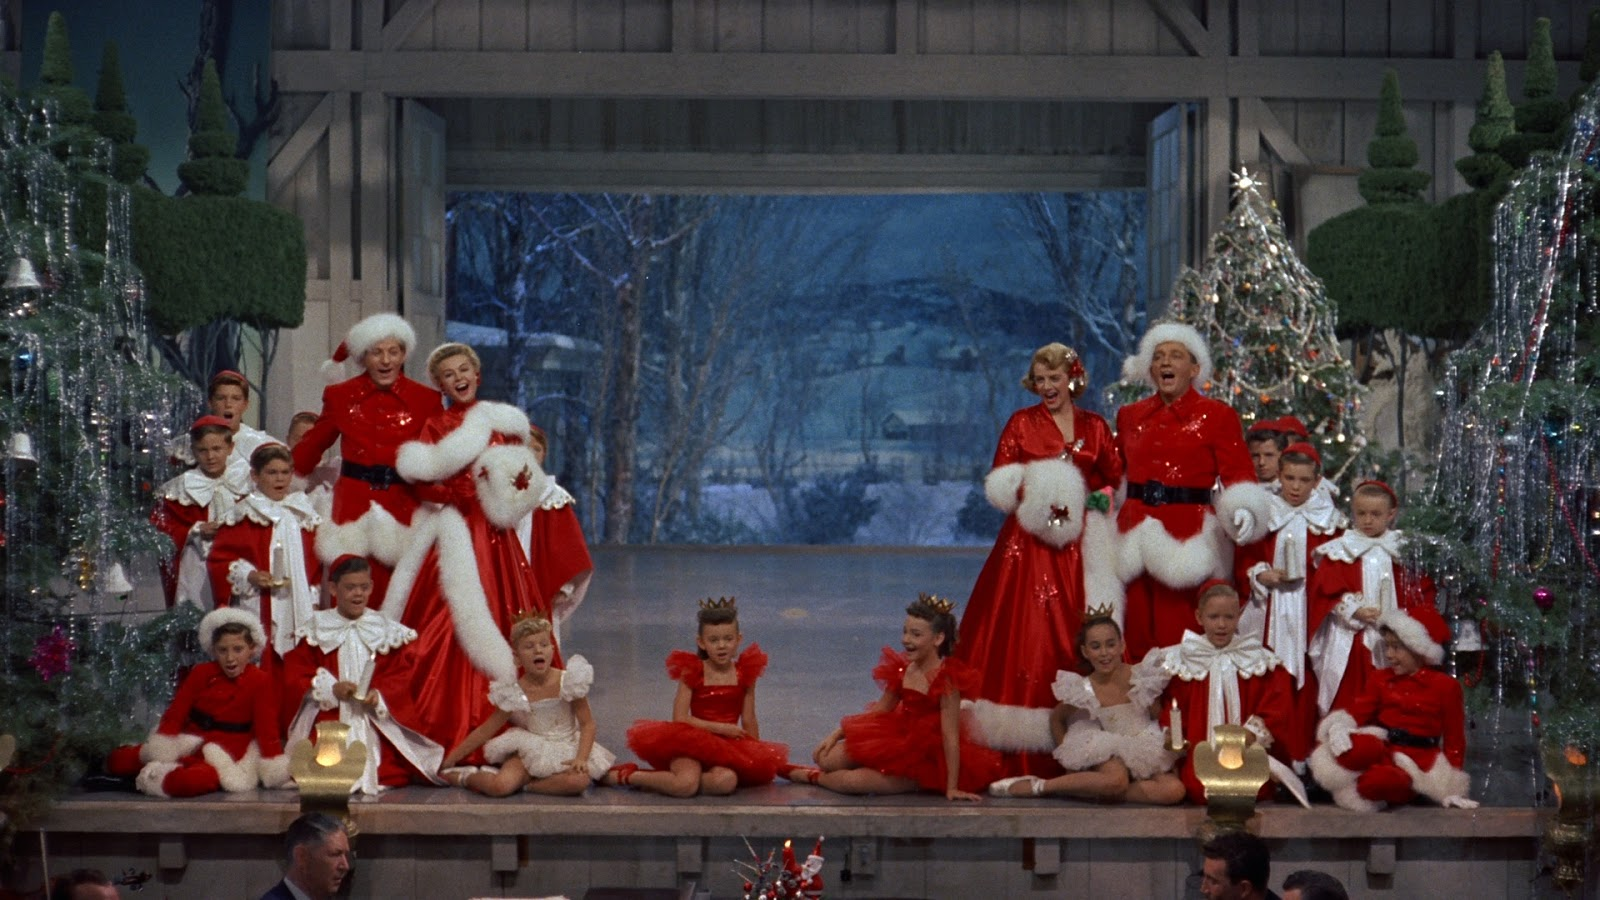 White Christmas - Amanda welcomes new guest Laura, along with return guests Kyle and Chris I., to discuss the holiday classic, White Christmas. Laura watches the film every Christmas Eve with her family, Kyle is shocked by how blue Bing Crosby's eyes are on screen, Chris loves seeing all the extra details in the movie on the big screen, and Amanda is blown away by Edith Head's body of work in 1954.